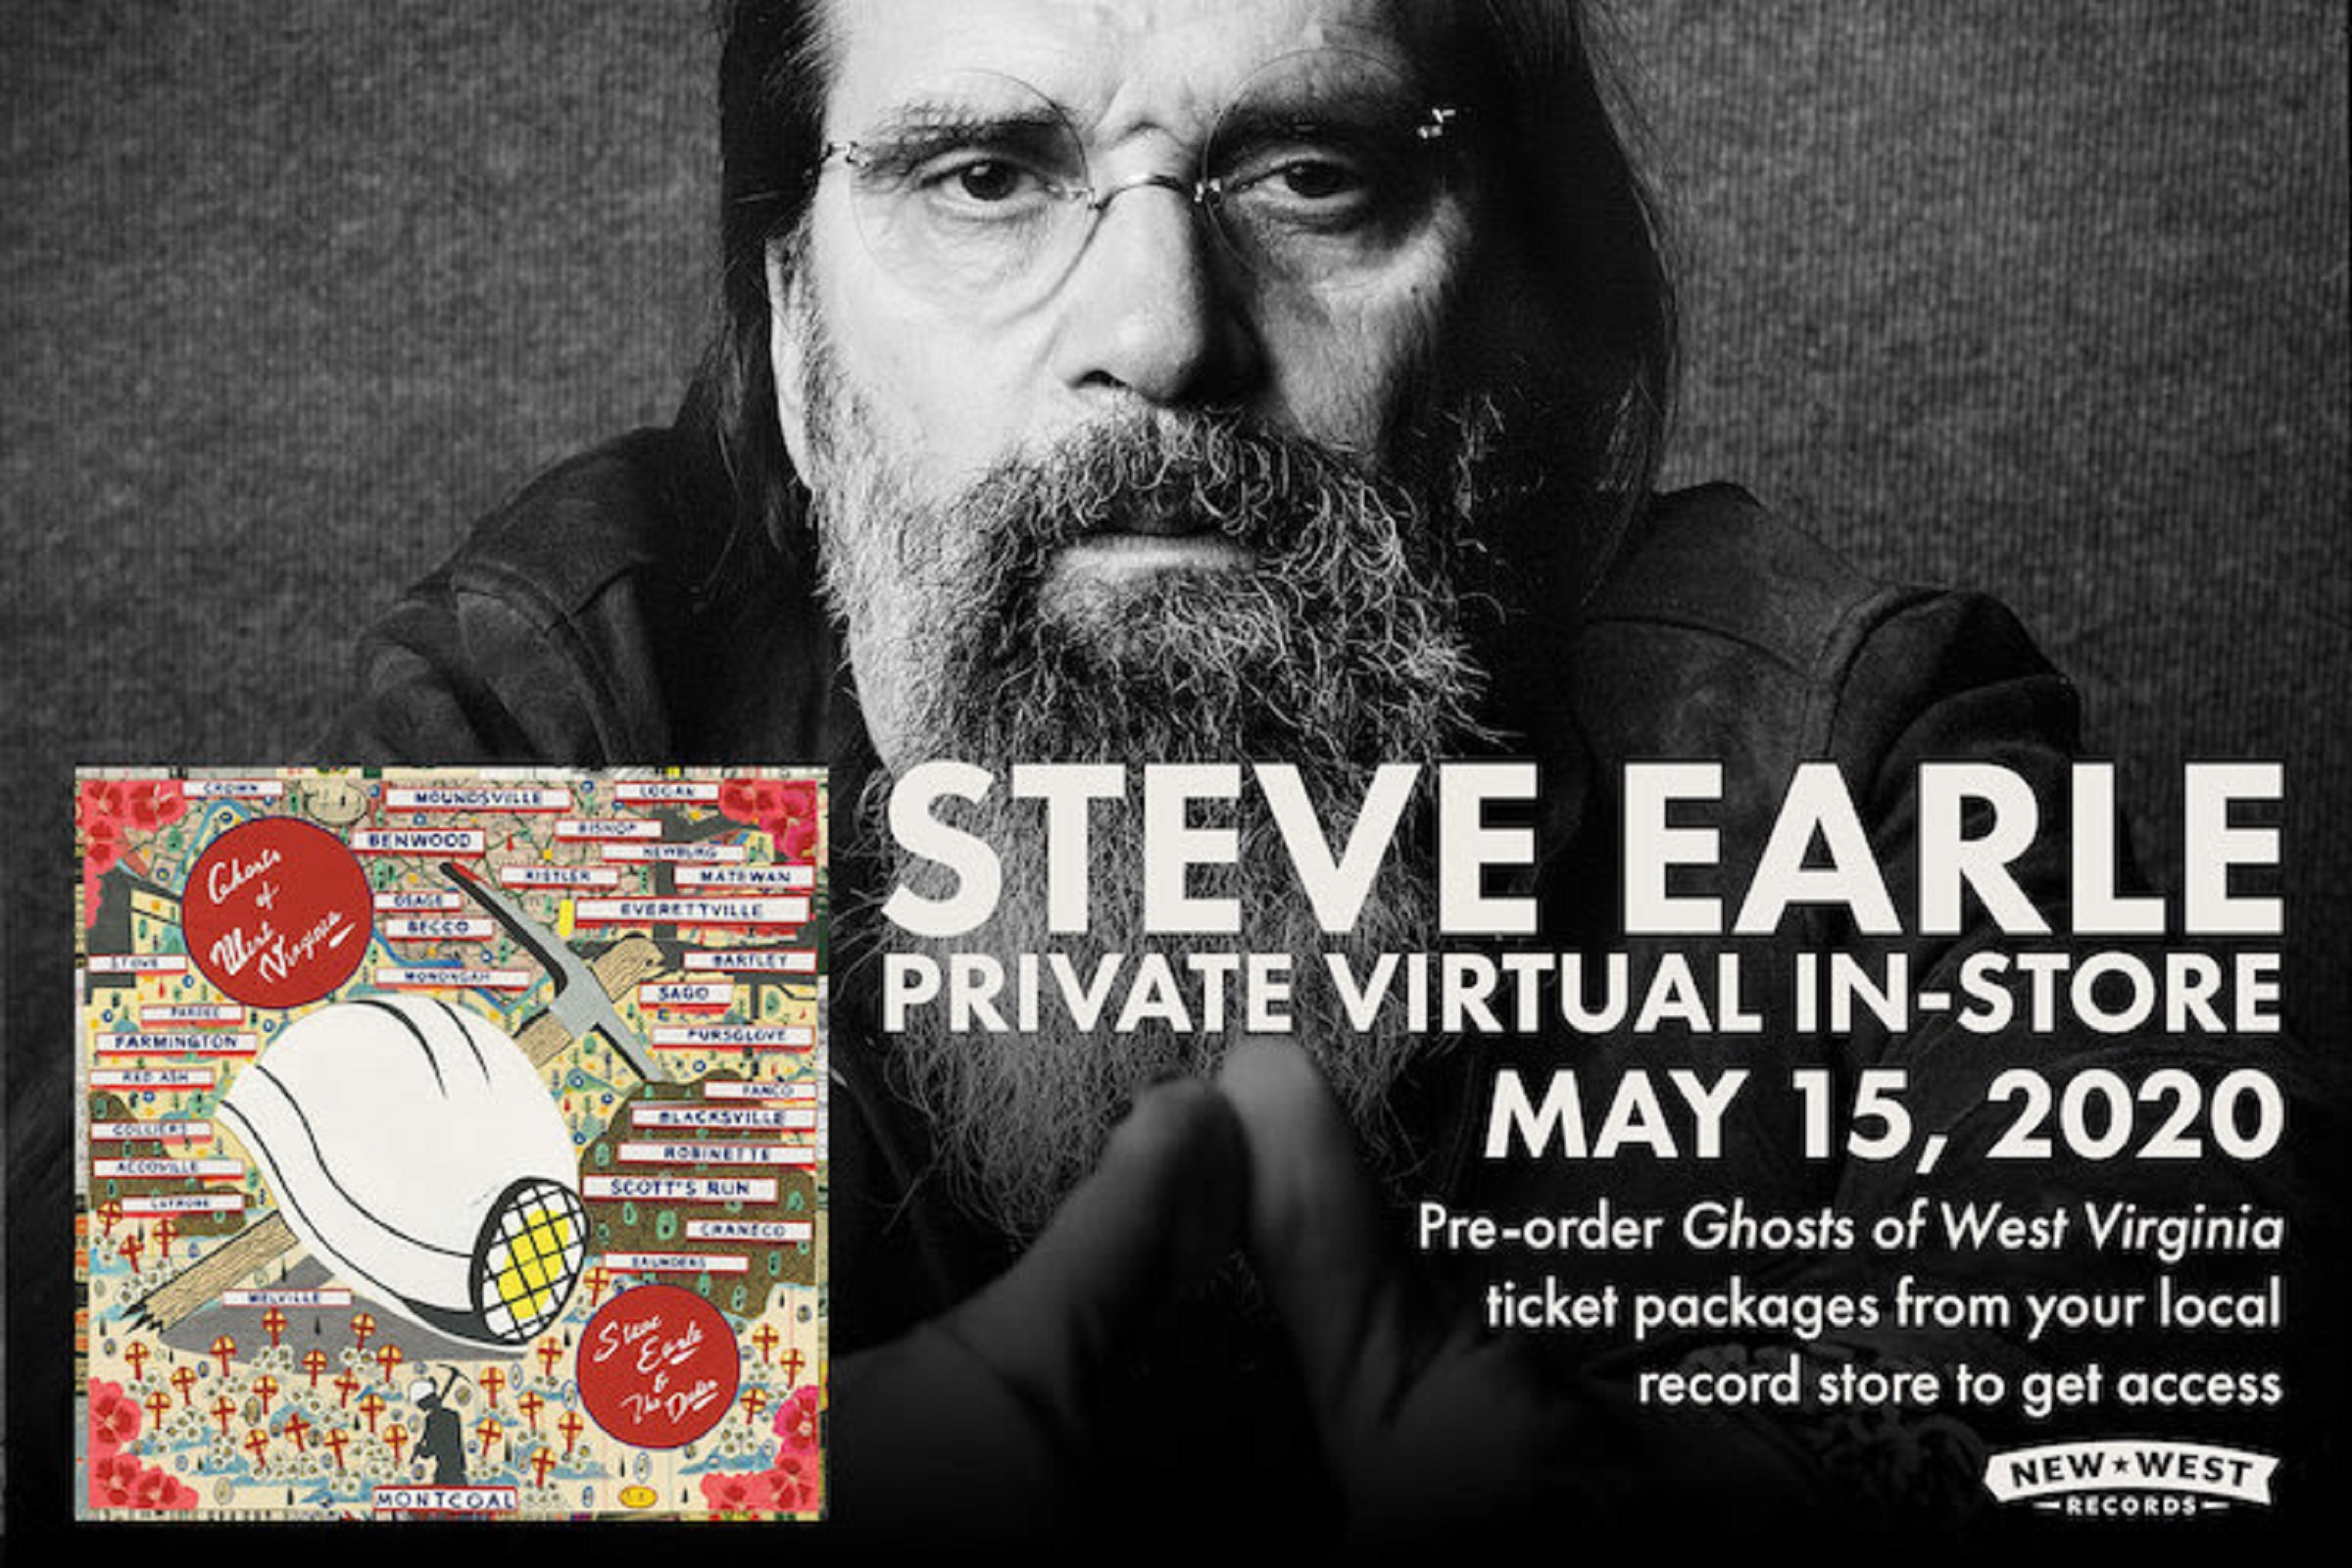 Steve Earle Announces Independent Record Store Virtual In-Store Performance - Democracy Now!